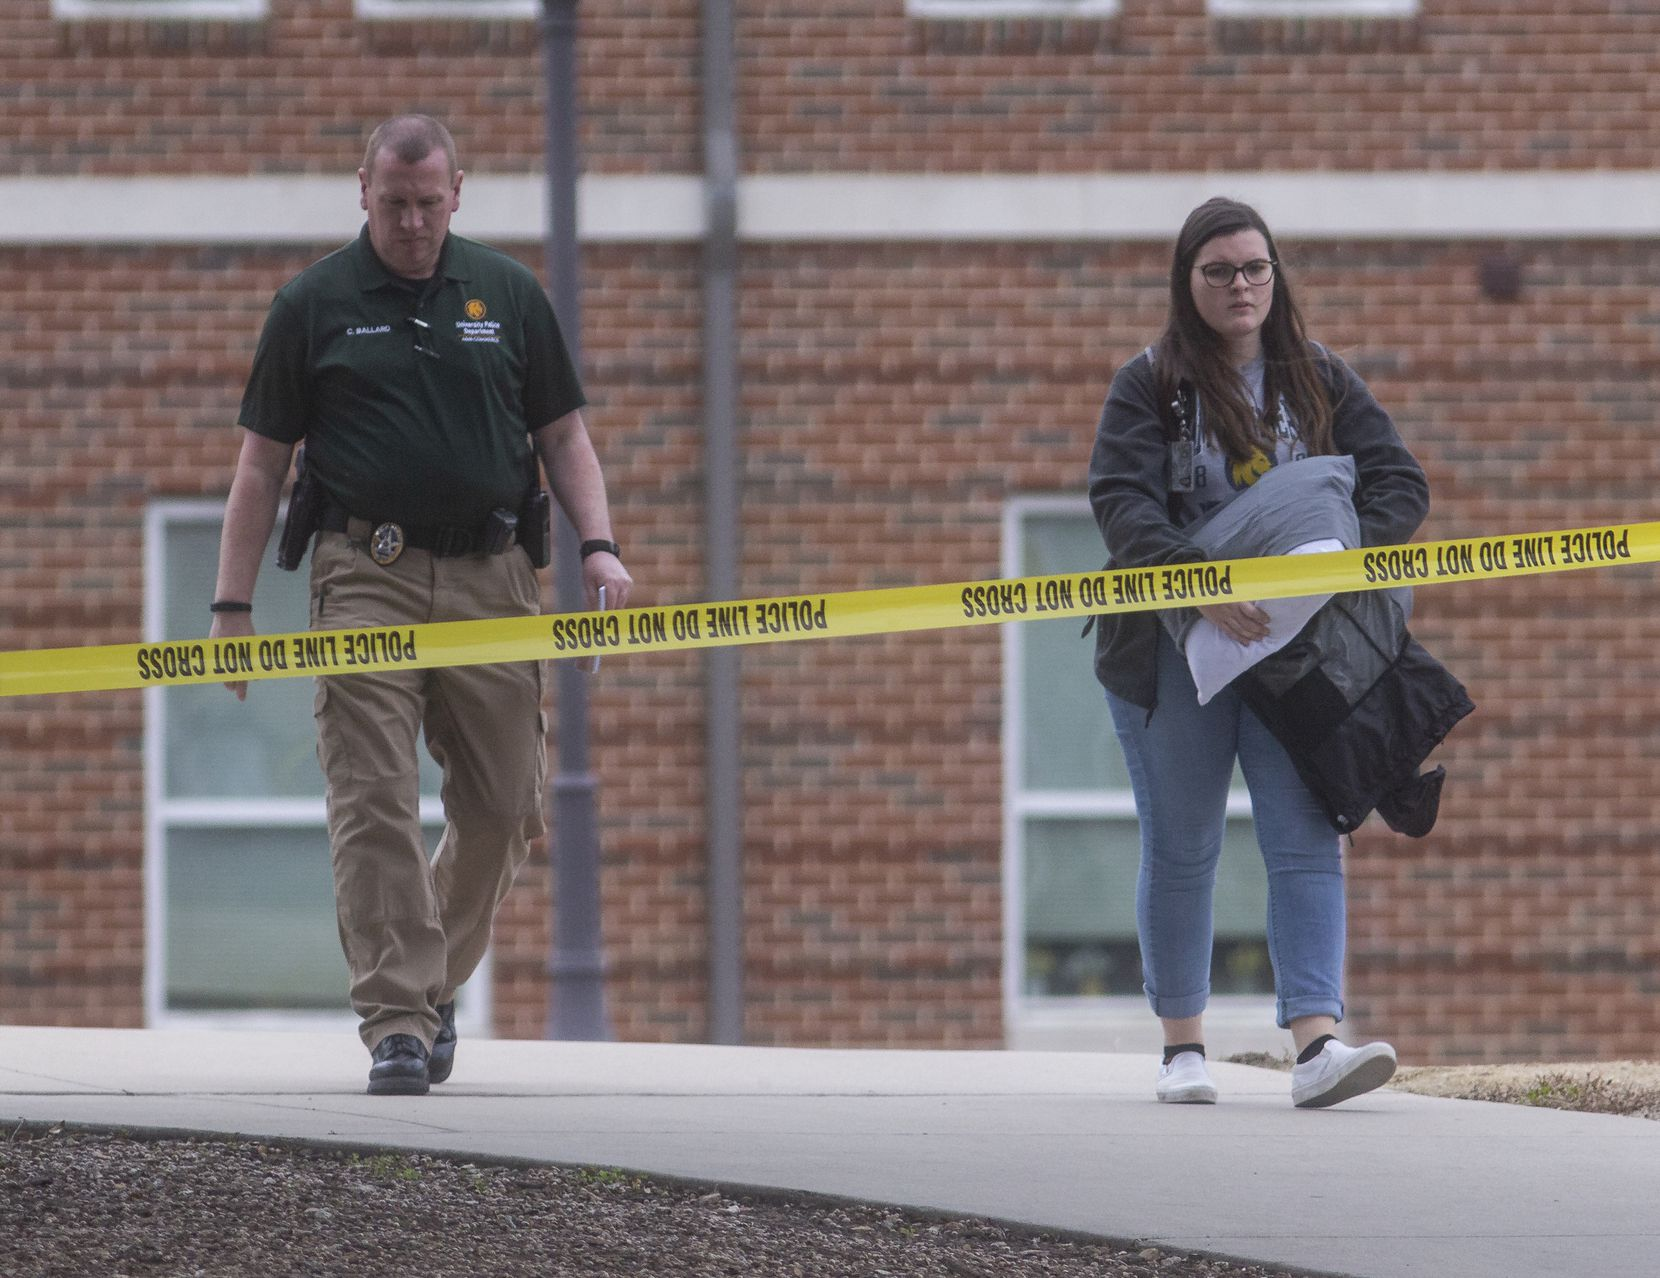 A resident is escorted out of the Pride Rock residence hall where two women were fatally shot and a toddler was wounded Monday at Texas A&M University-Commerce on Feb. 3, 2020 in Commerce, Texas.